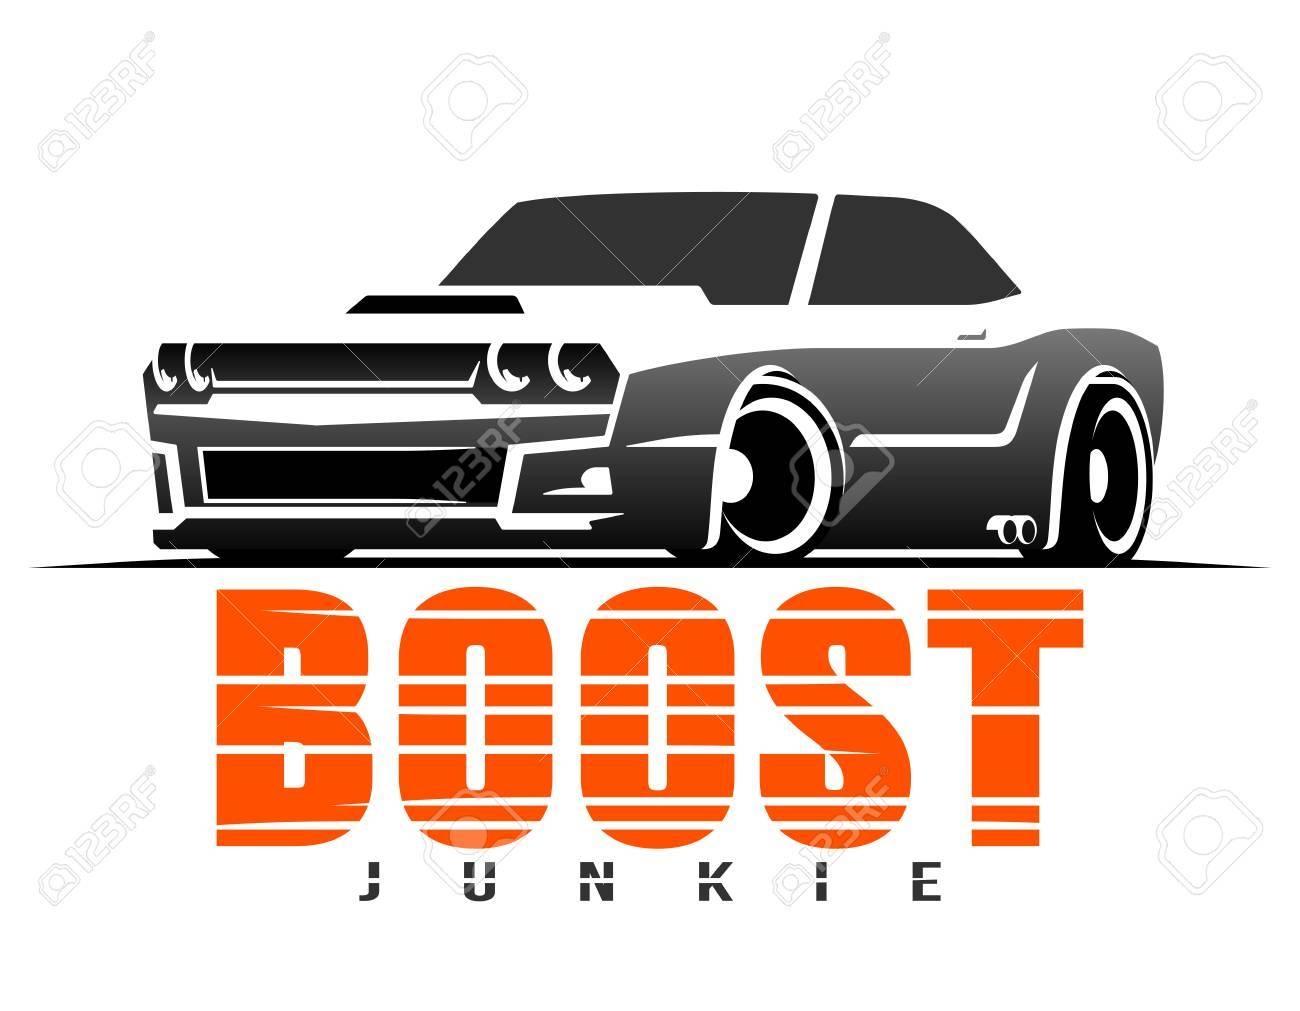 boost muscle car t-shirt graphics royalty free cliparts, vectors